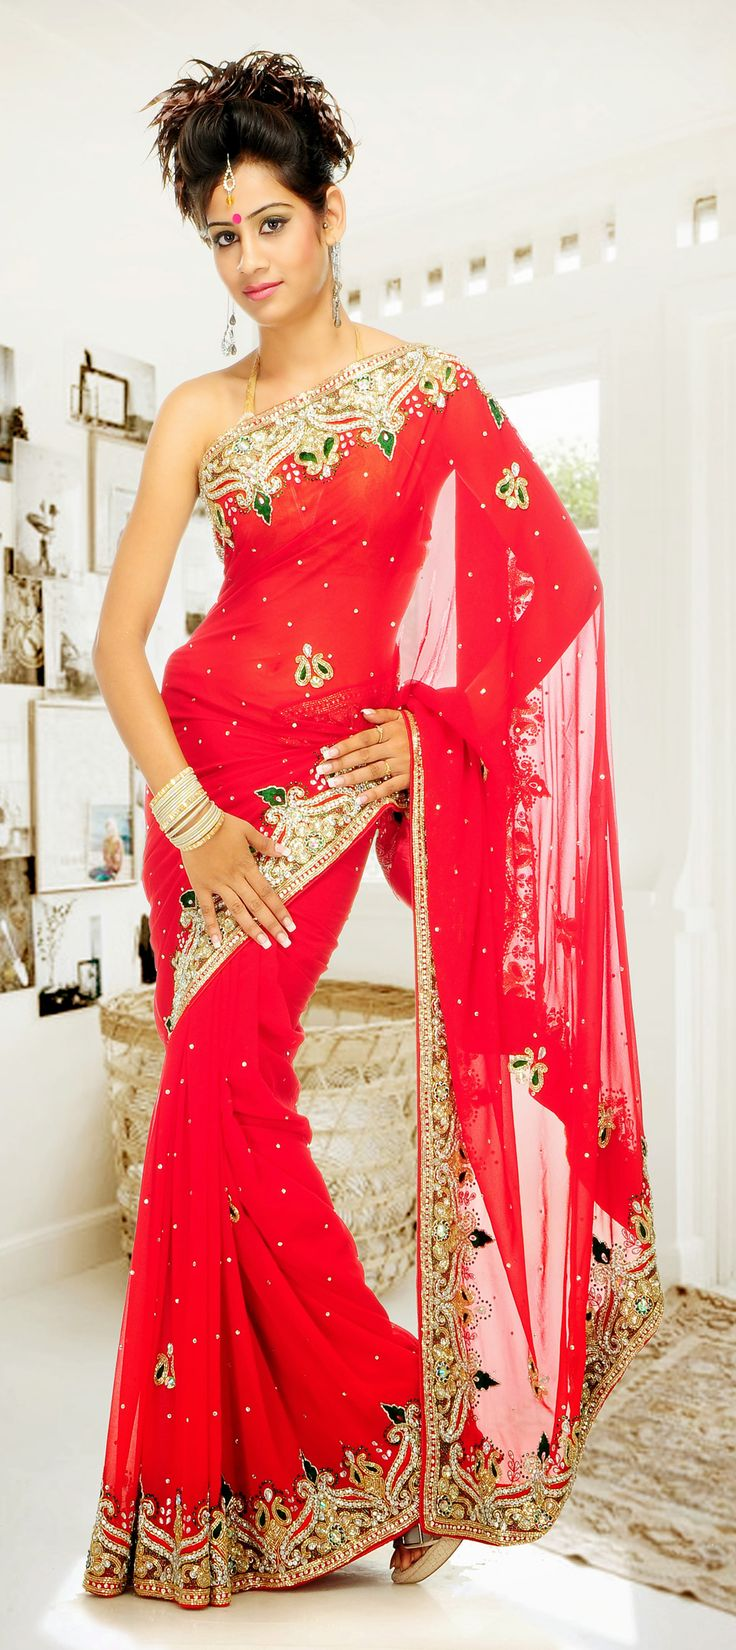 29 best Saris images on Pinterest | Indian saris, Indian gowns and ...